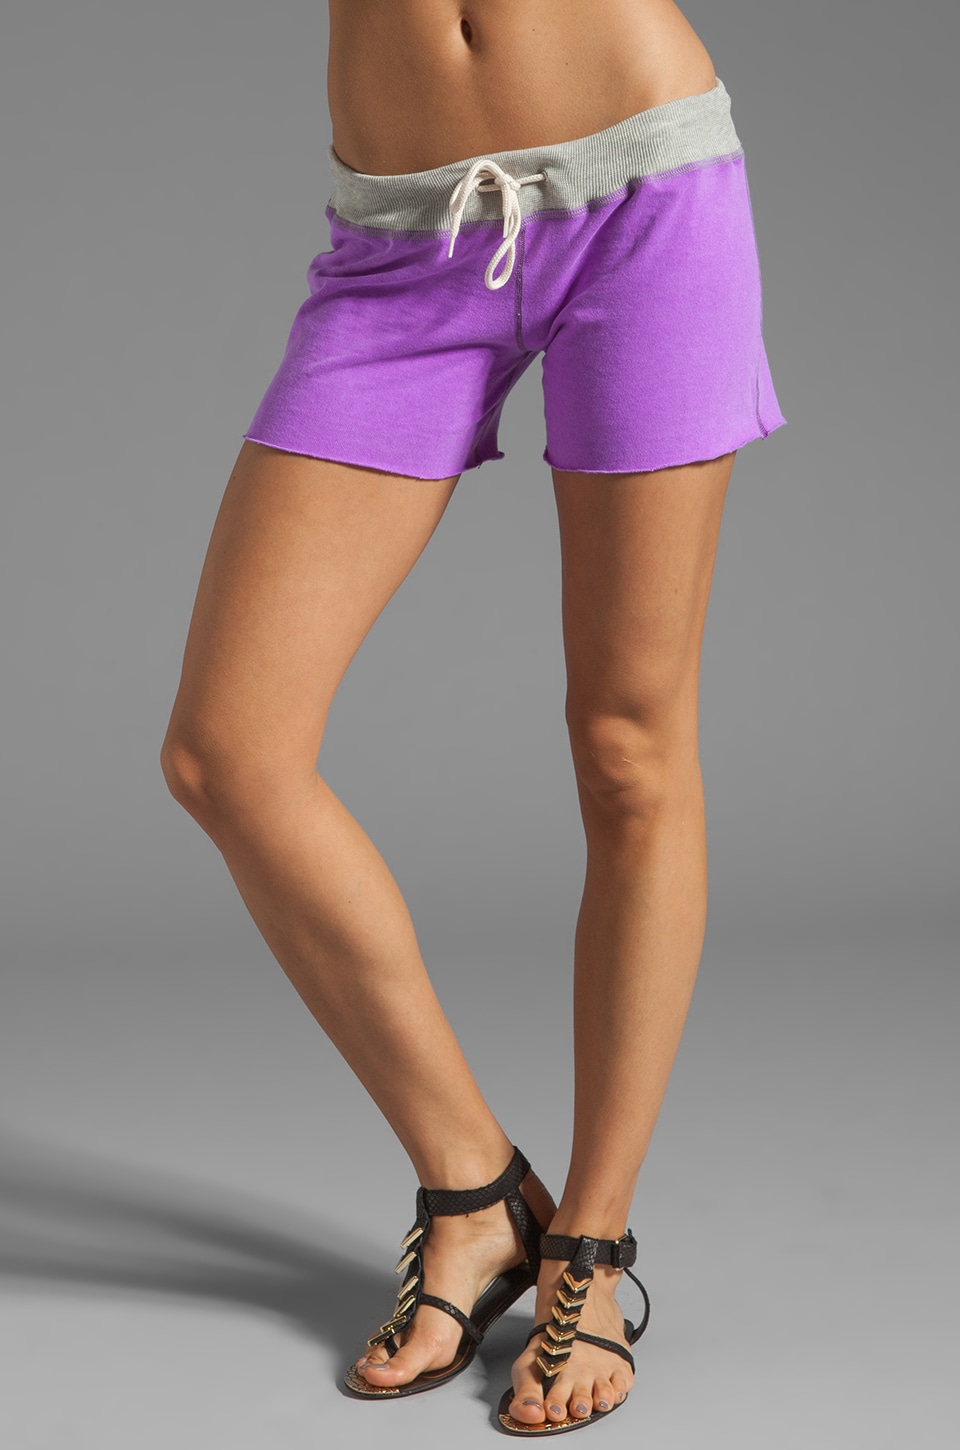 MONROW Vintage Shorts in Neon Violet